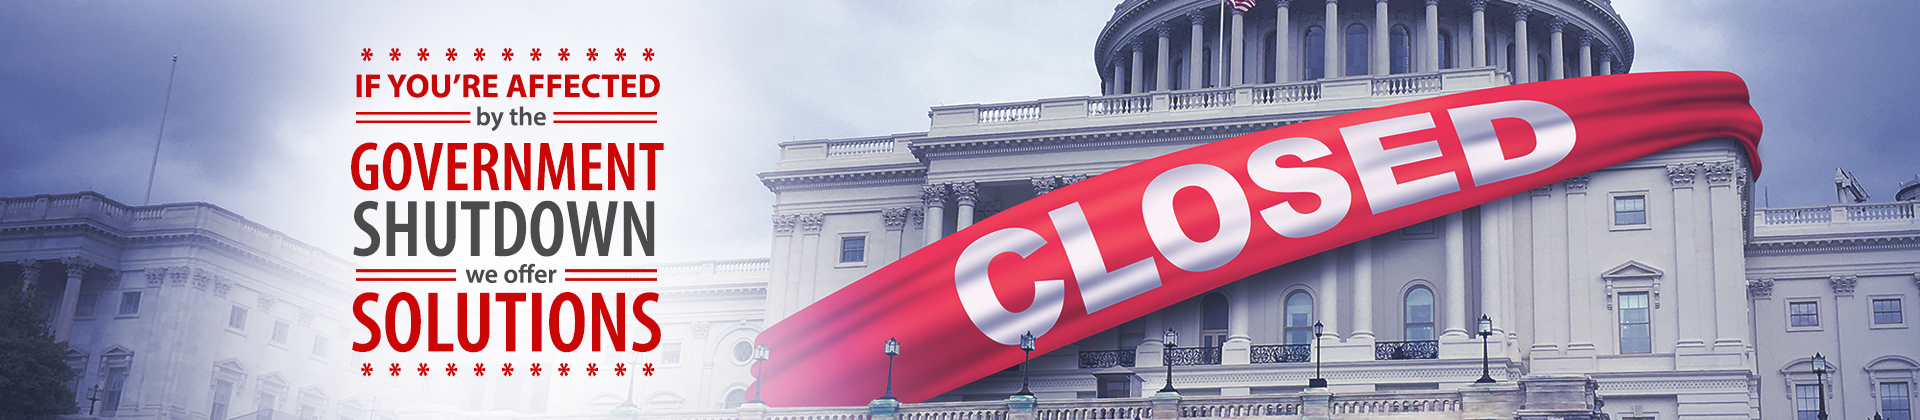 Affected by Government Shutdown? We can help. Call us at 440.266.2200